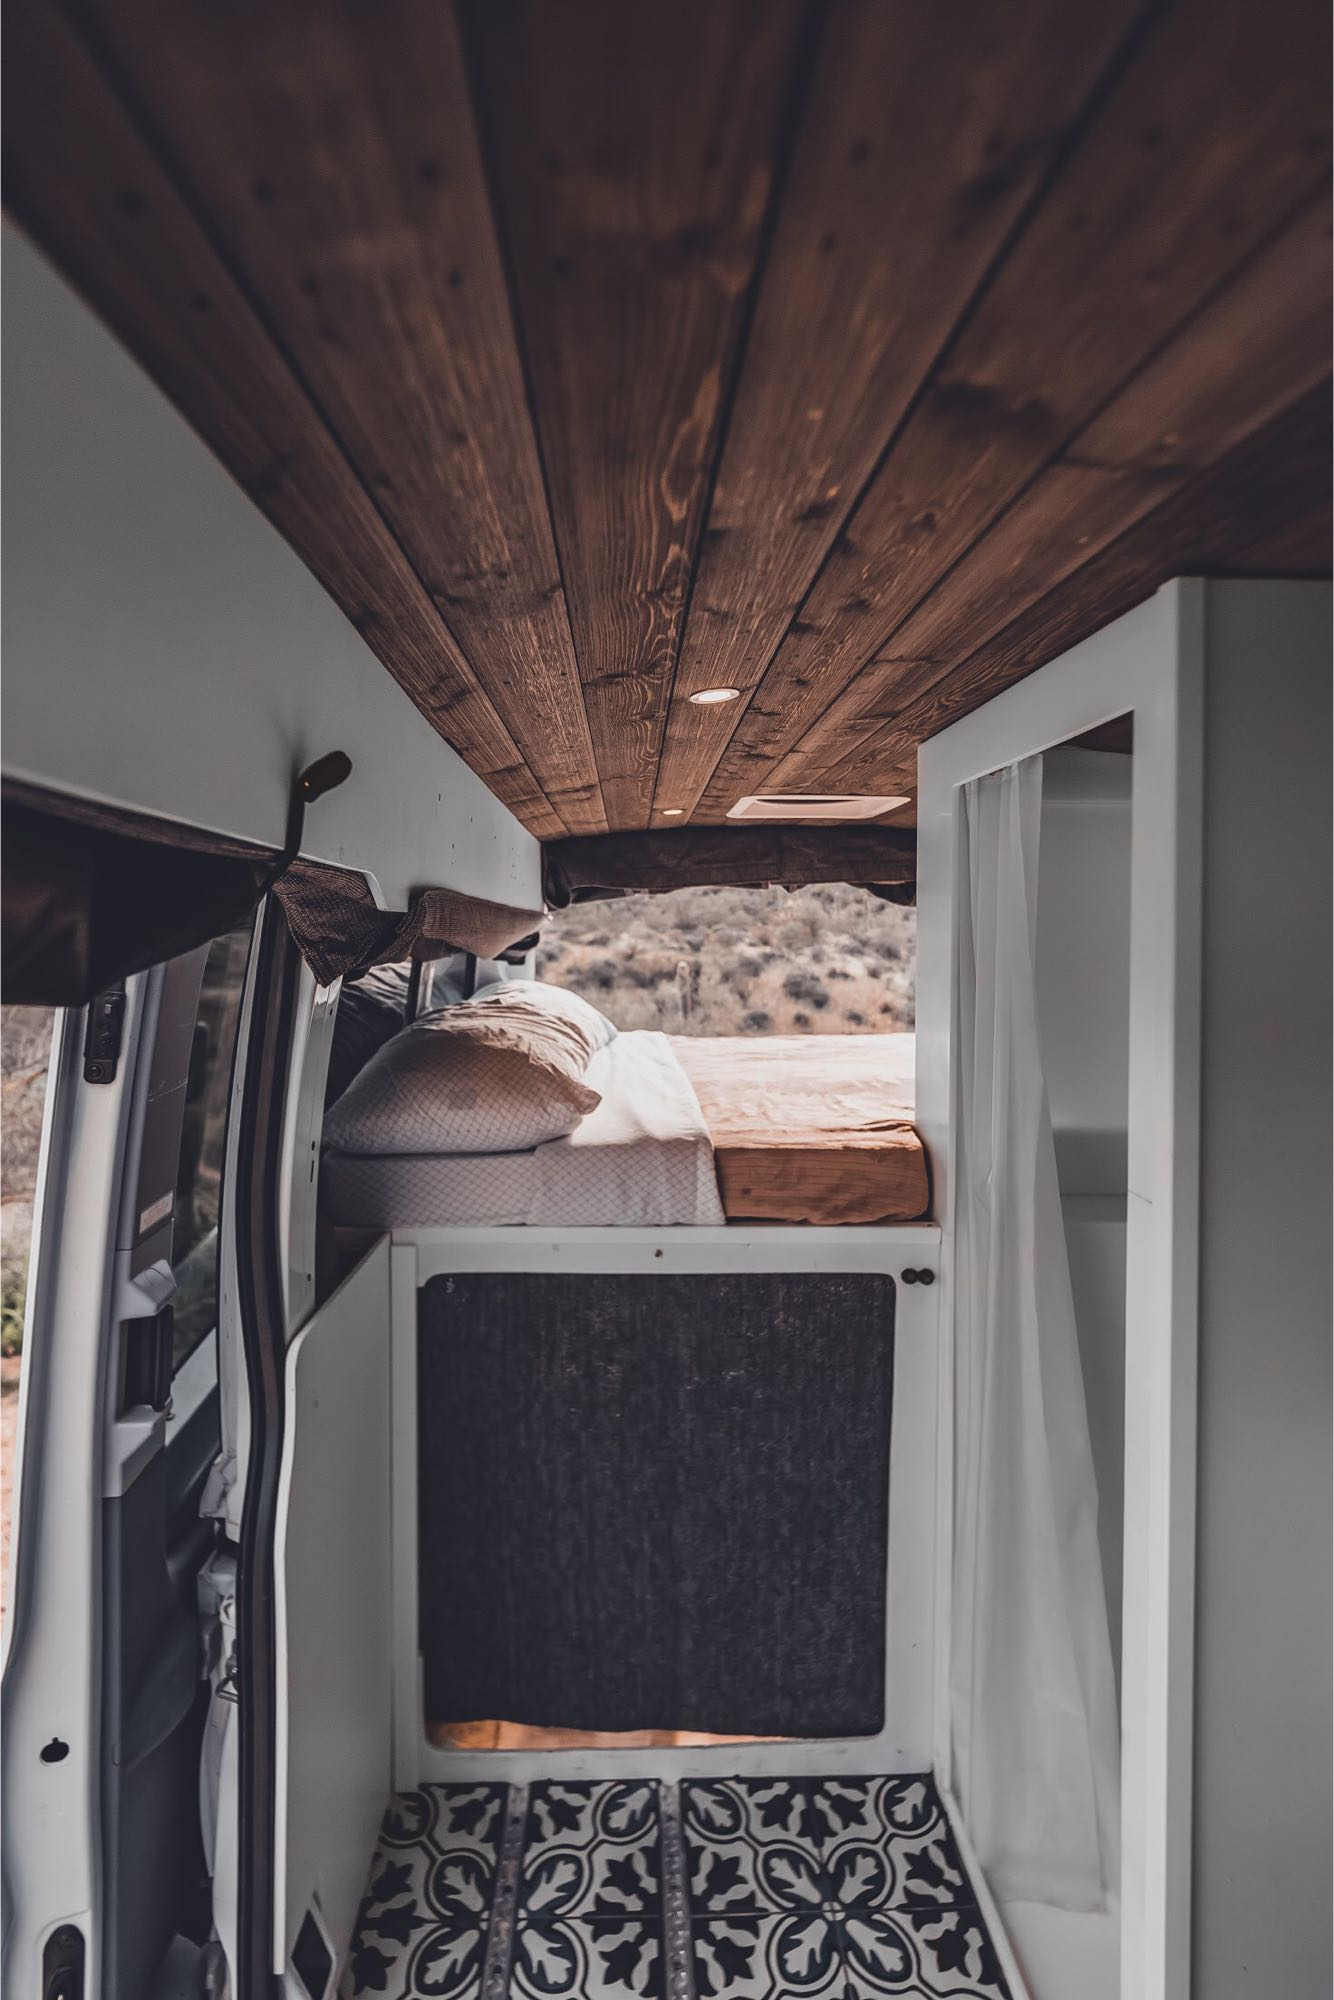 Large comfortable bed, distressed barn wood ceiling. Ford Transit 2015